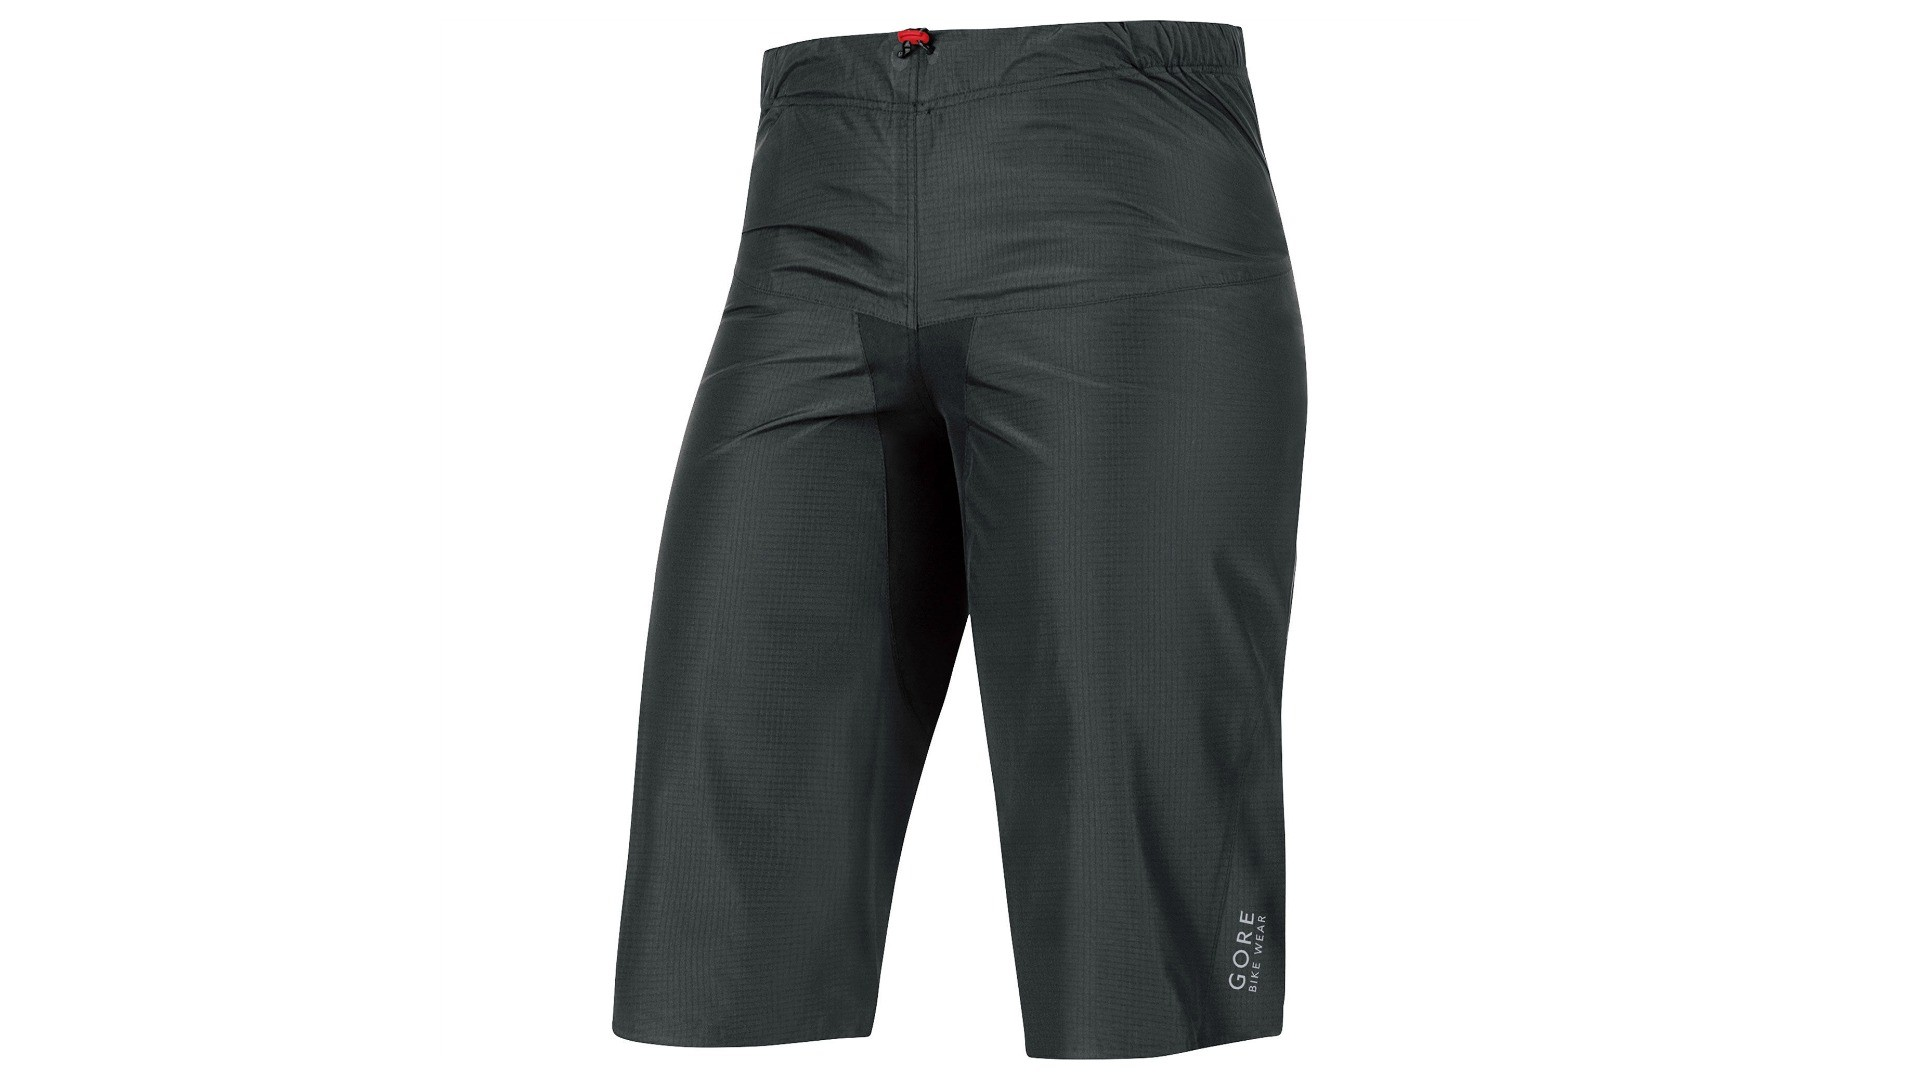 Keep your nether regions warm and dry with waterproof shorts